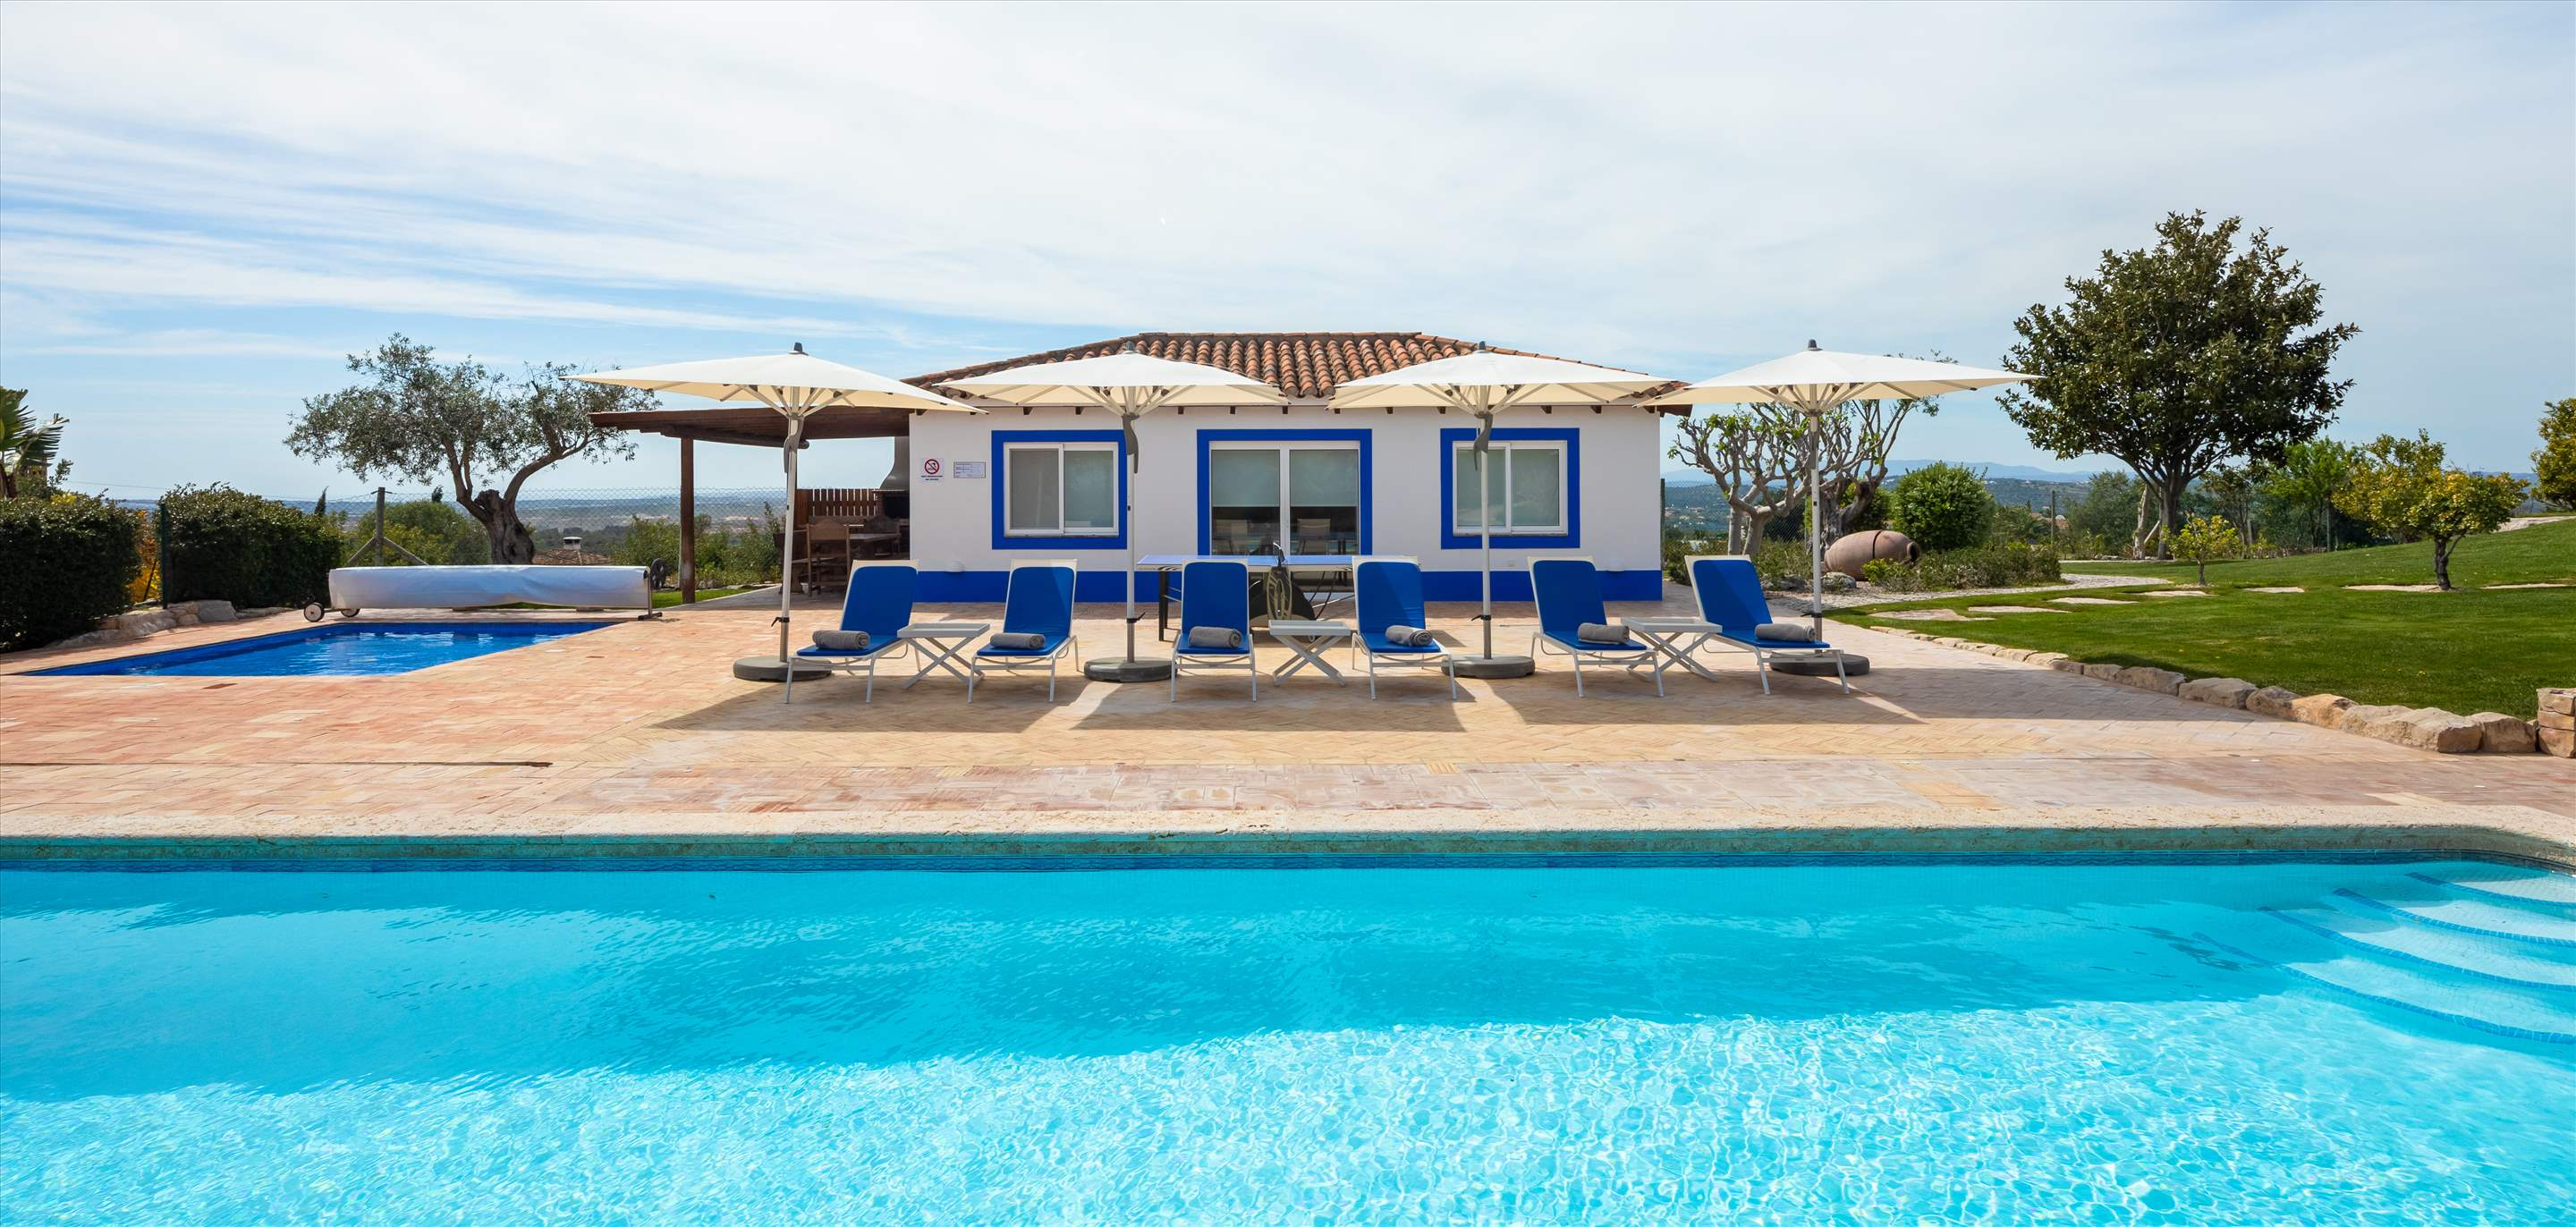 Casa da Montanha, 11-12 persons, 7 bedroom villa in Vilamoura Area, Algarve Photo #15